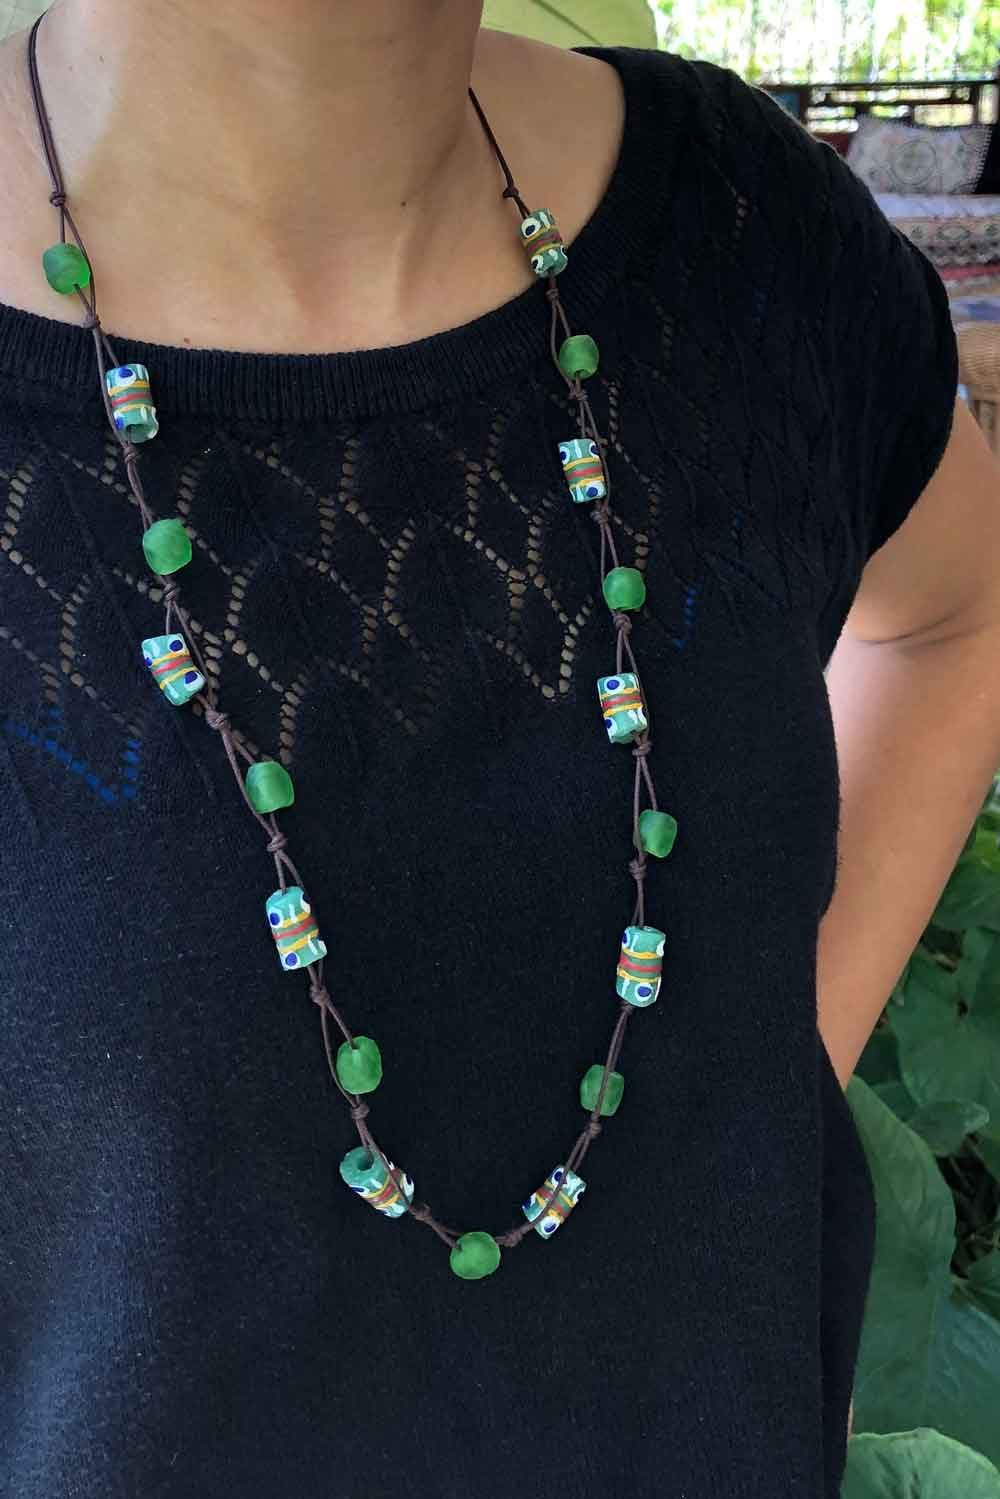 Green Jiona Knot Necklace Brown Cord by SHIKHAZURI Modelled